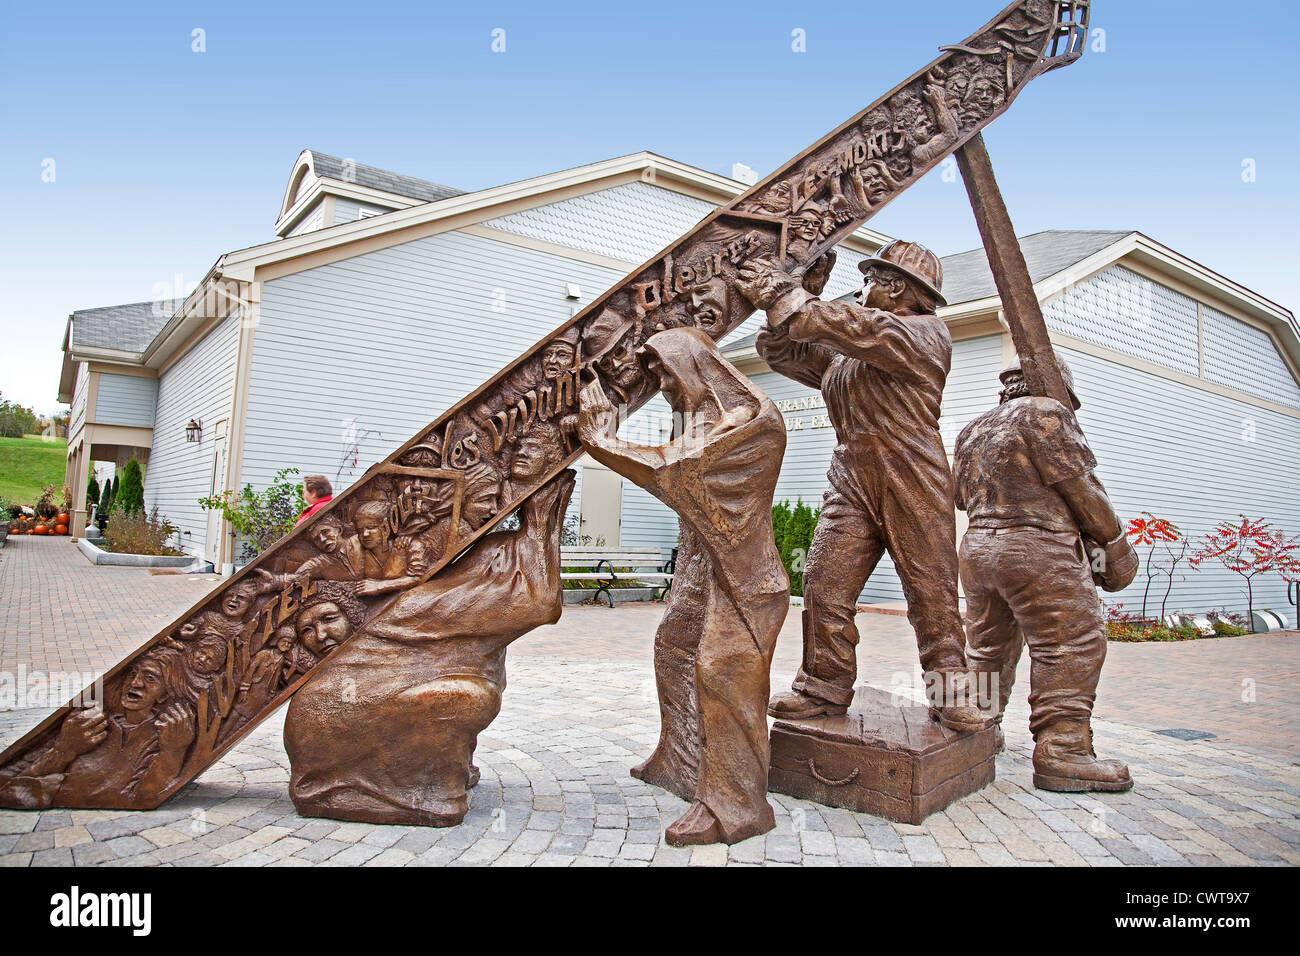 Canada. New Brunswick. City of Saint John. W. Franklin Hatheway Labour Exhibit Center. Monument to all workers killed. - Stock Image